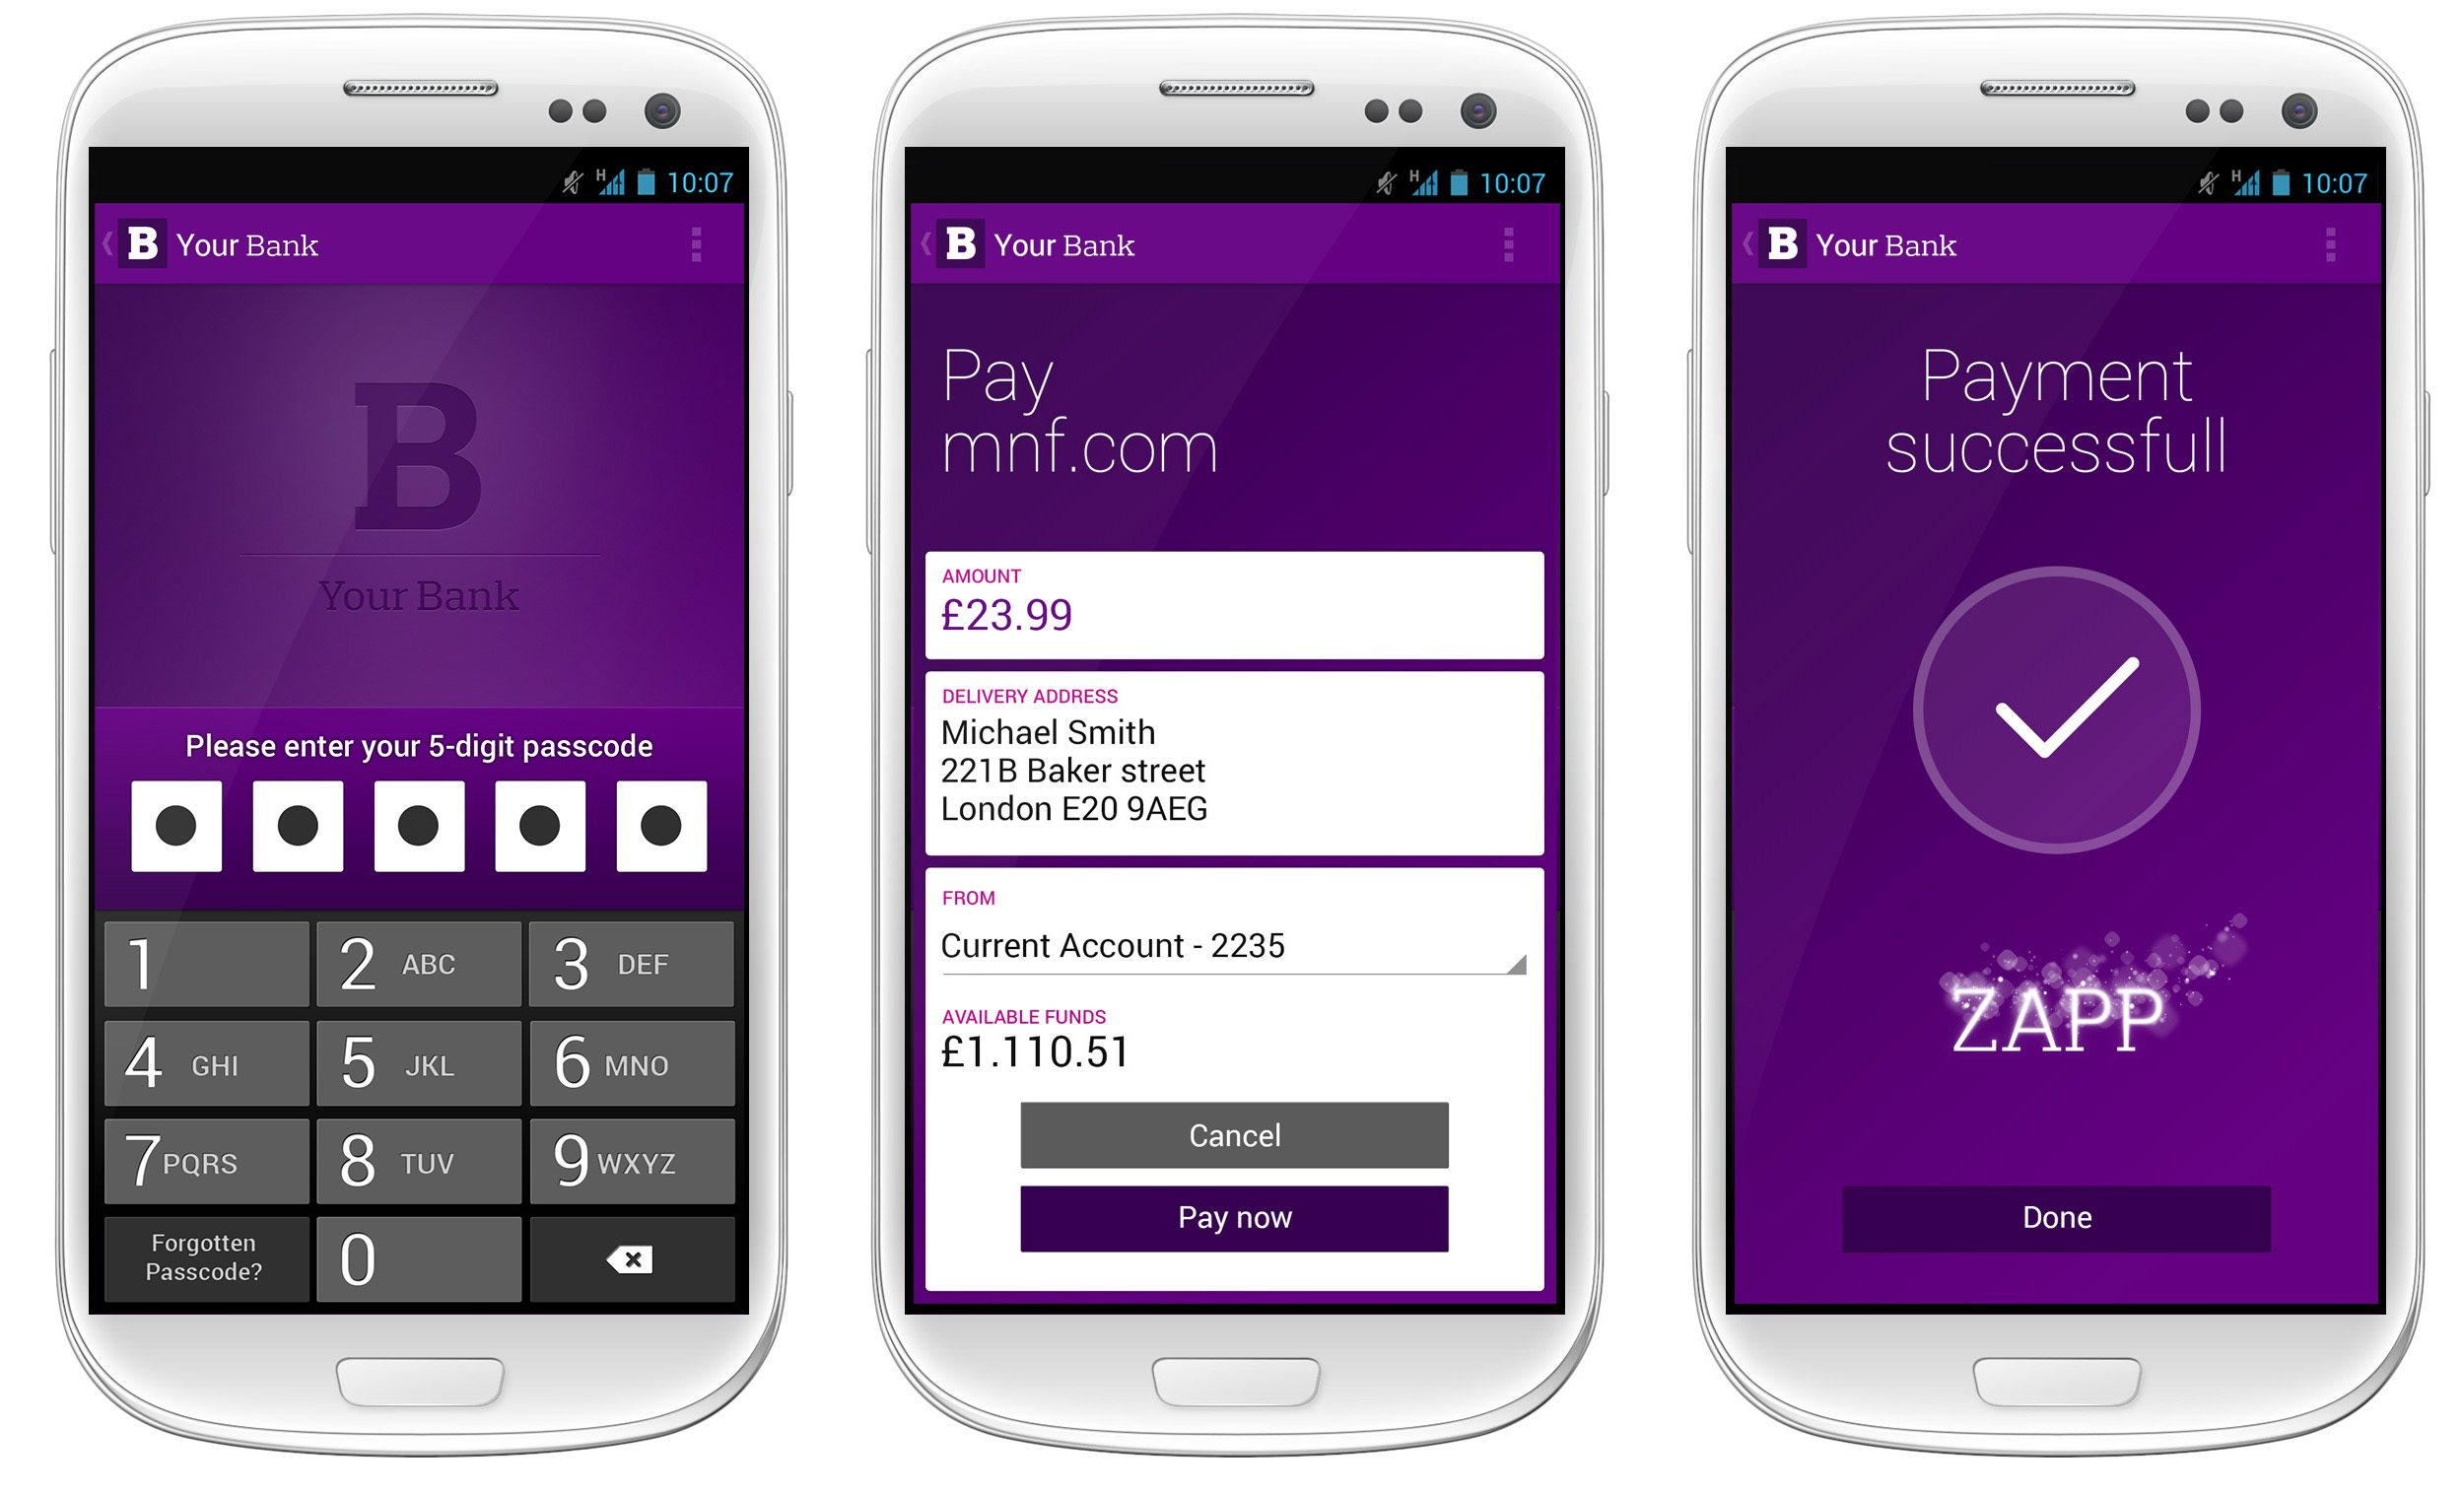 Five banks sign up to Zapp mobile payments service